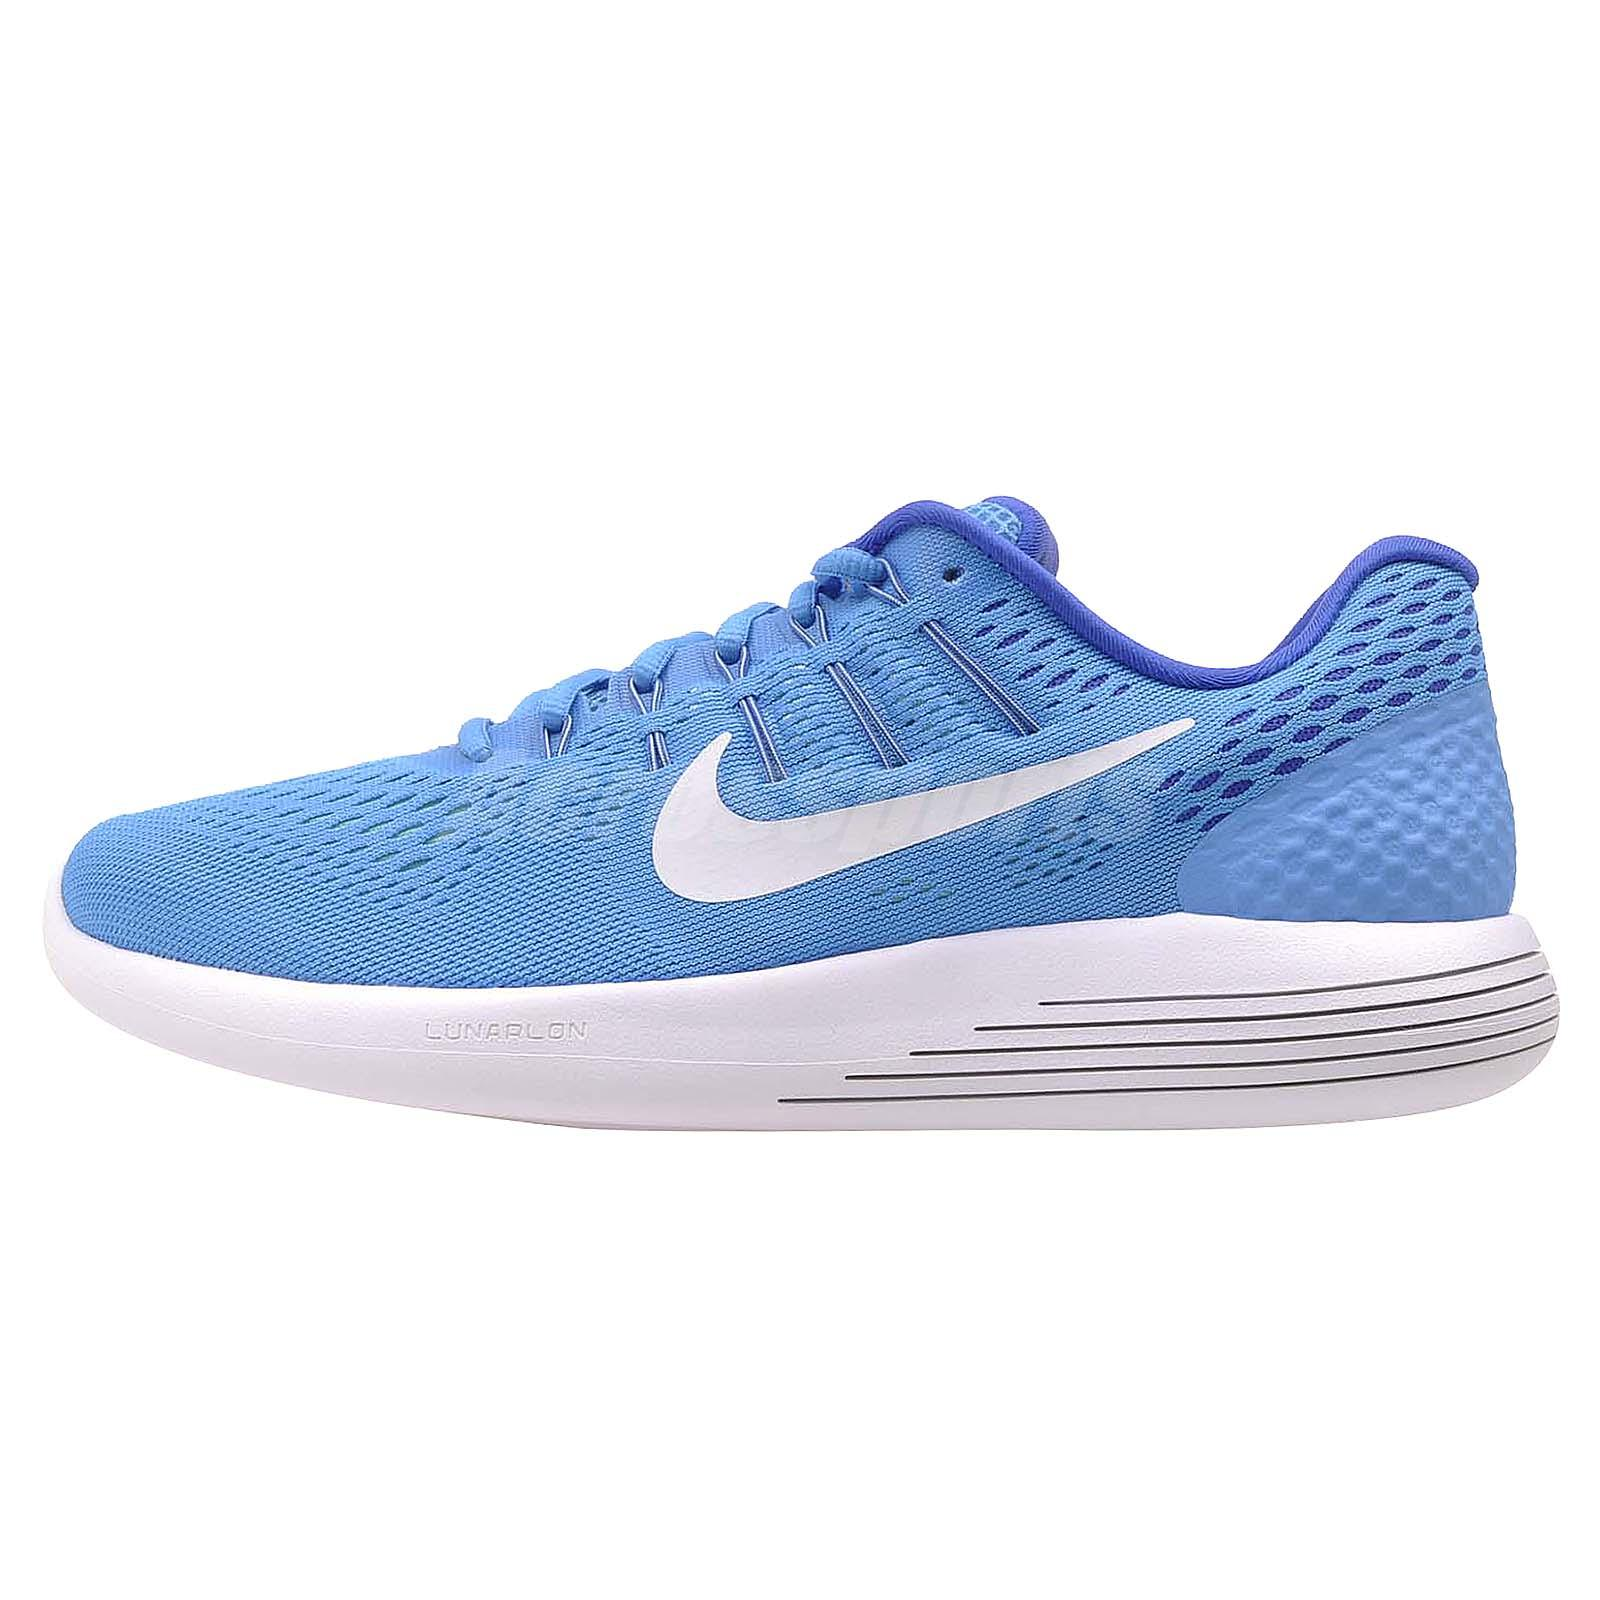 73f9b421c6c19 ... netherlands nike womans lunarglide 8 running wmns shoes blue glow 2016  843726 401 dc453 c17e8